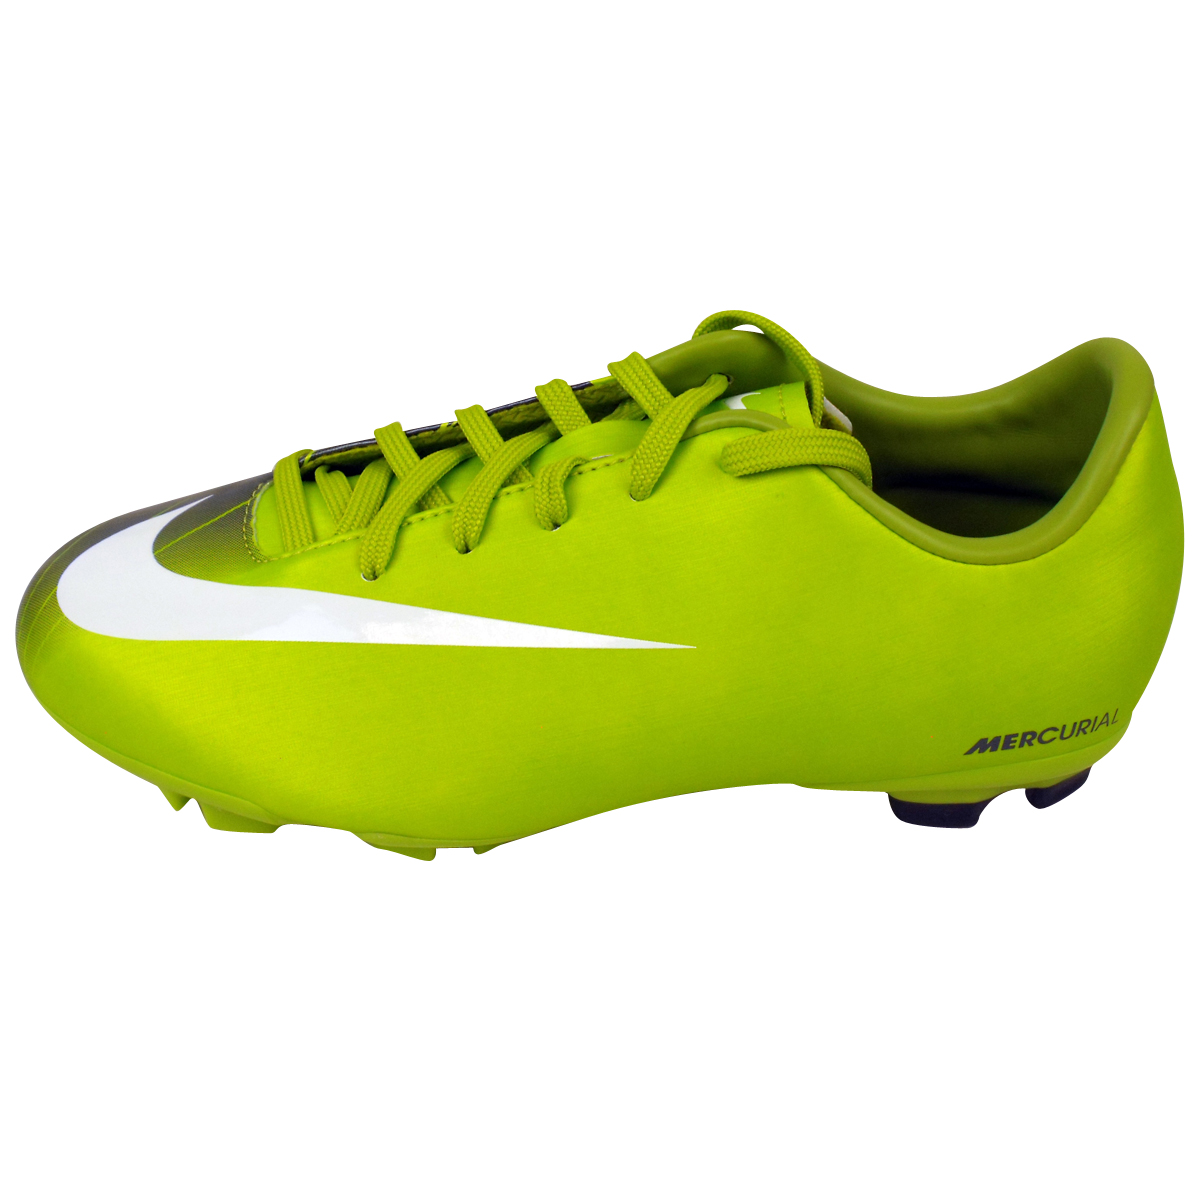 Nike Mercurial Gloves Amazon: Boys Nike Mercurial Victory FG Firm Ground Football Boots